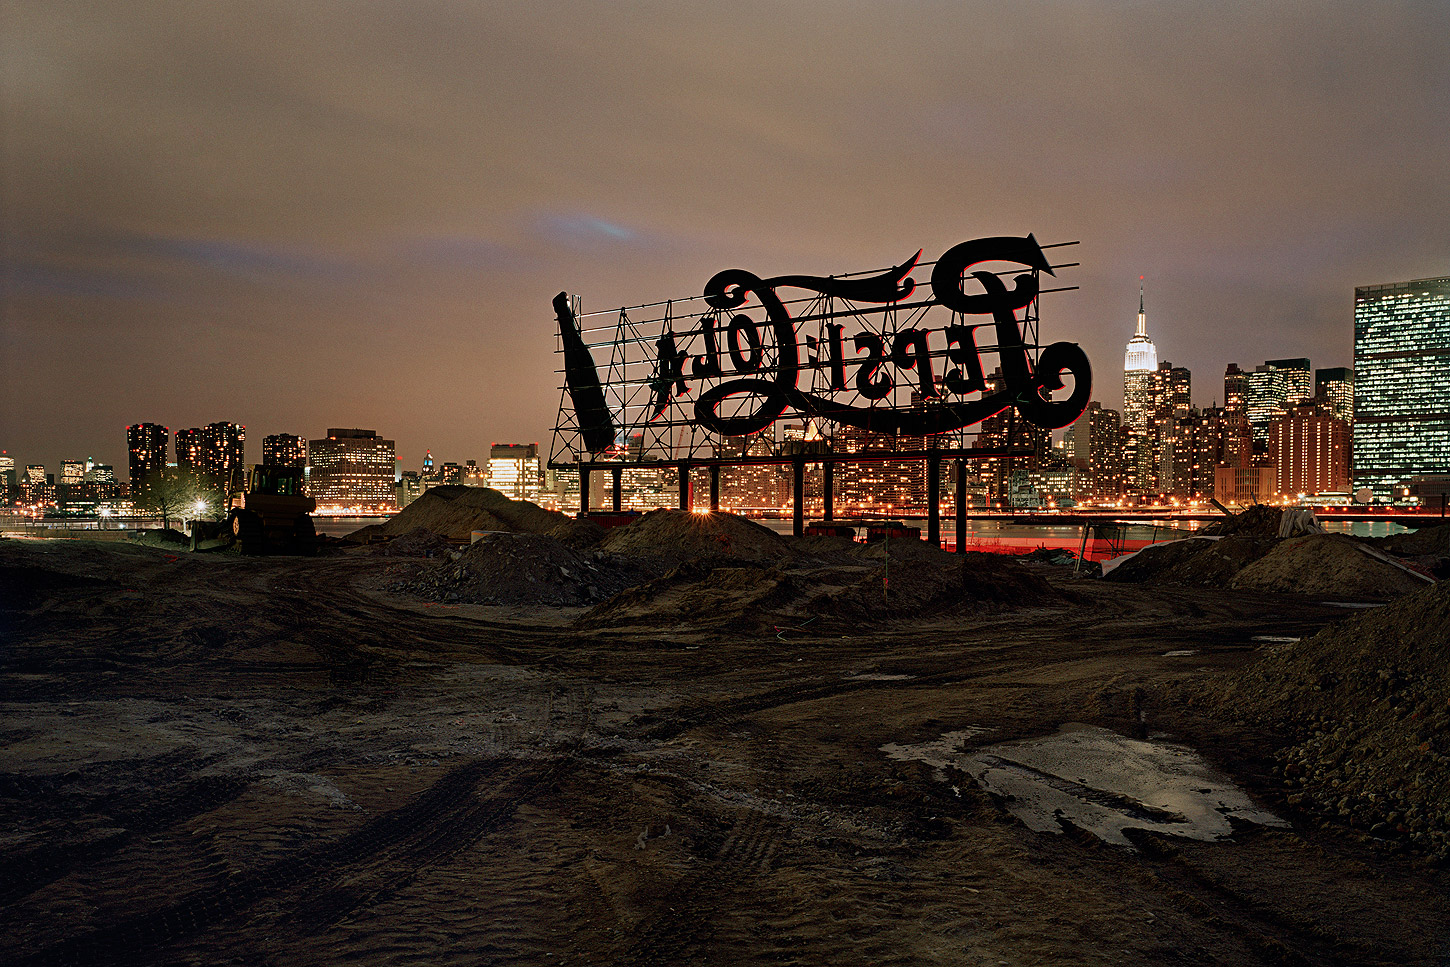 09. Pepsi-Cola Sign, Long Island City, New York, 2008